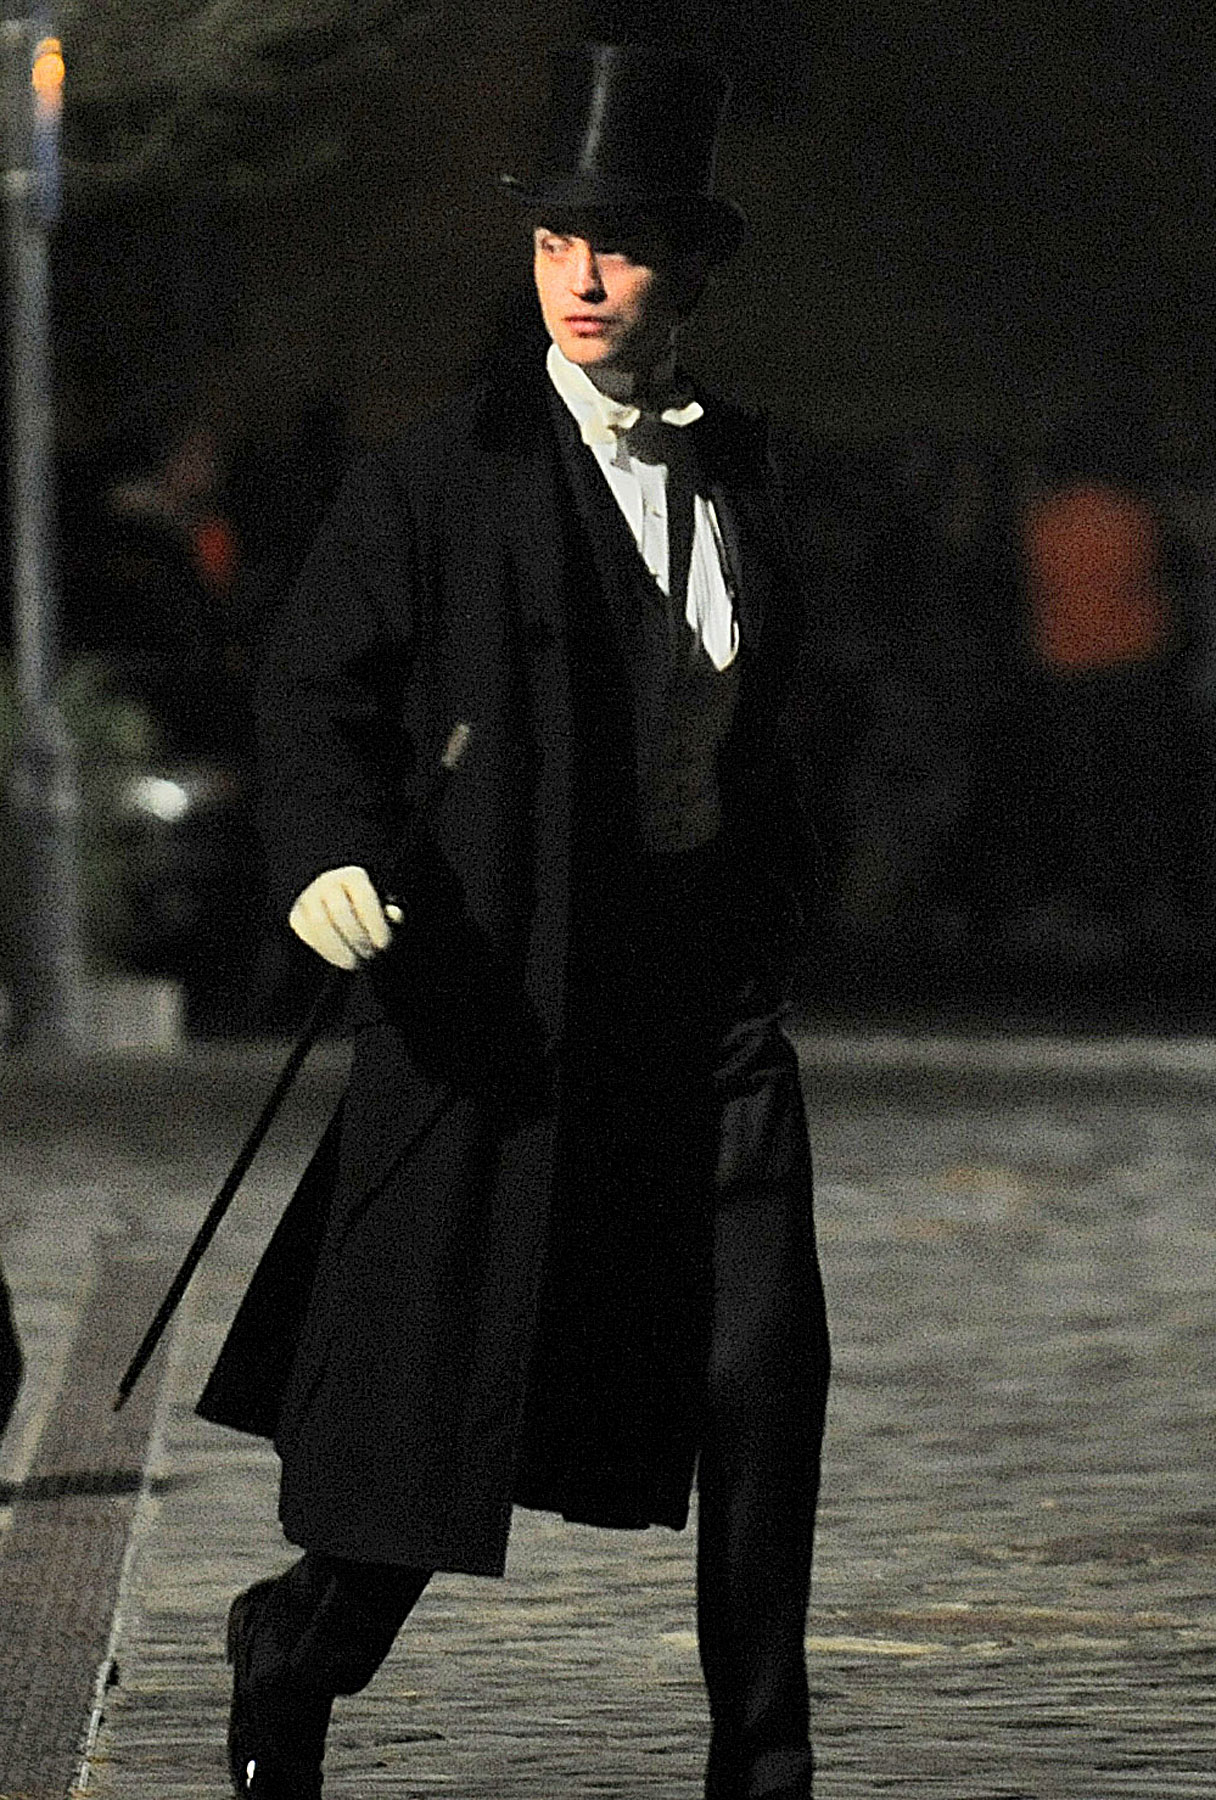 Robert Pattinson In A Top Hat, Because Why Not? (PHOTOS)